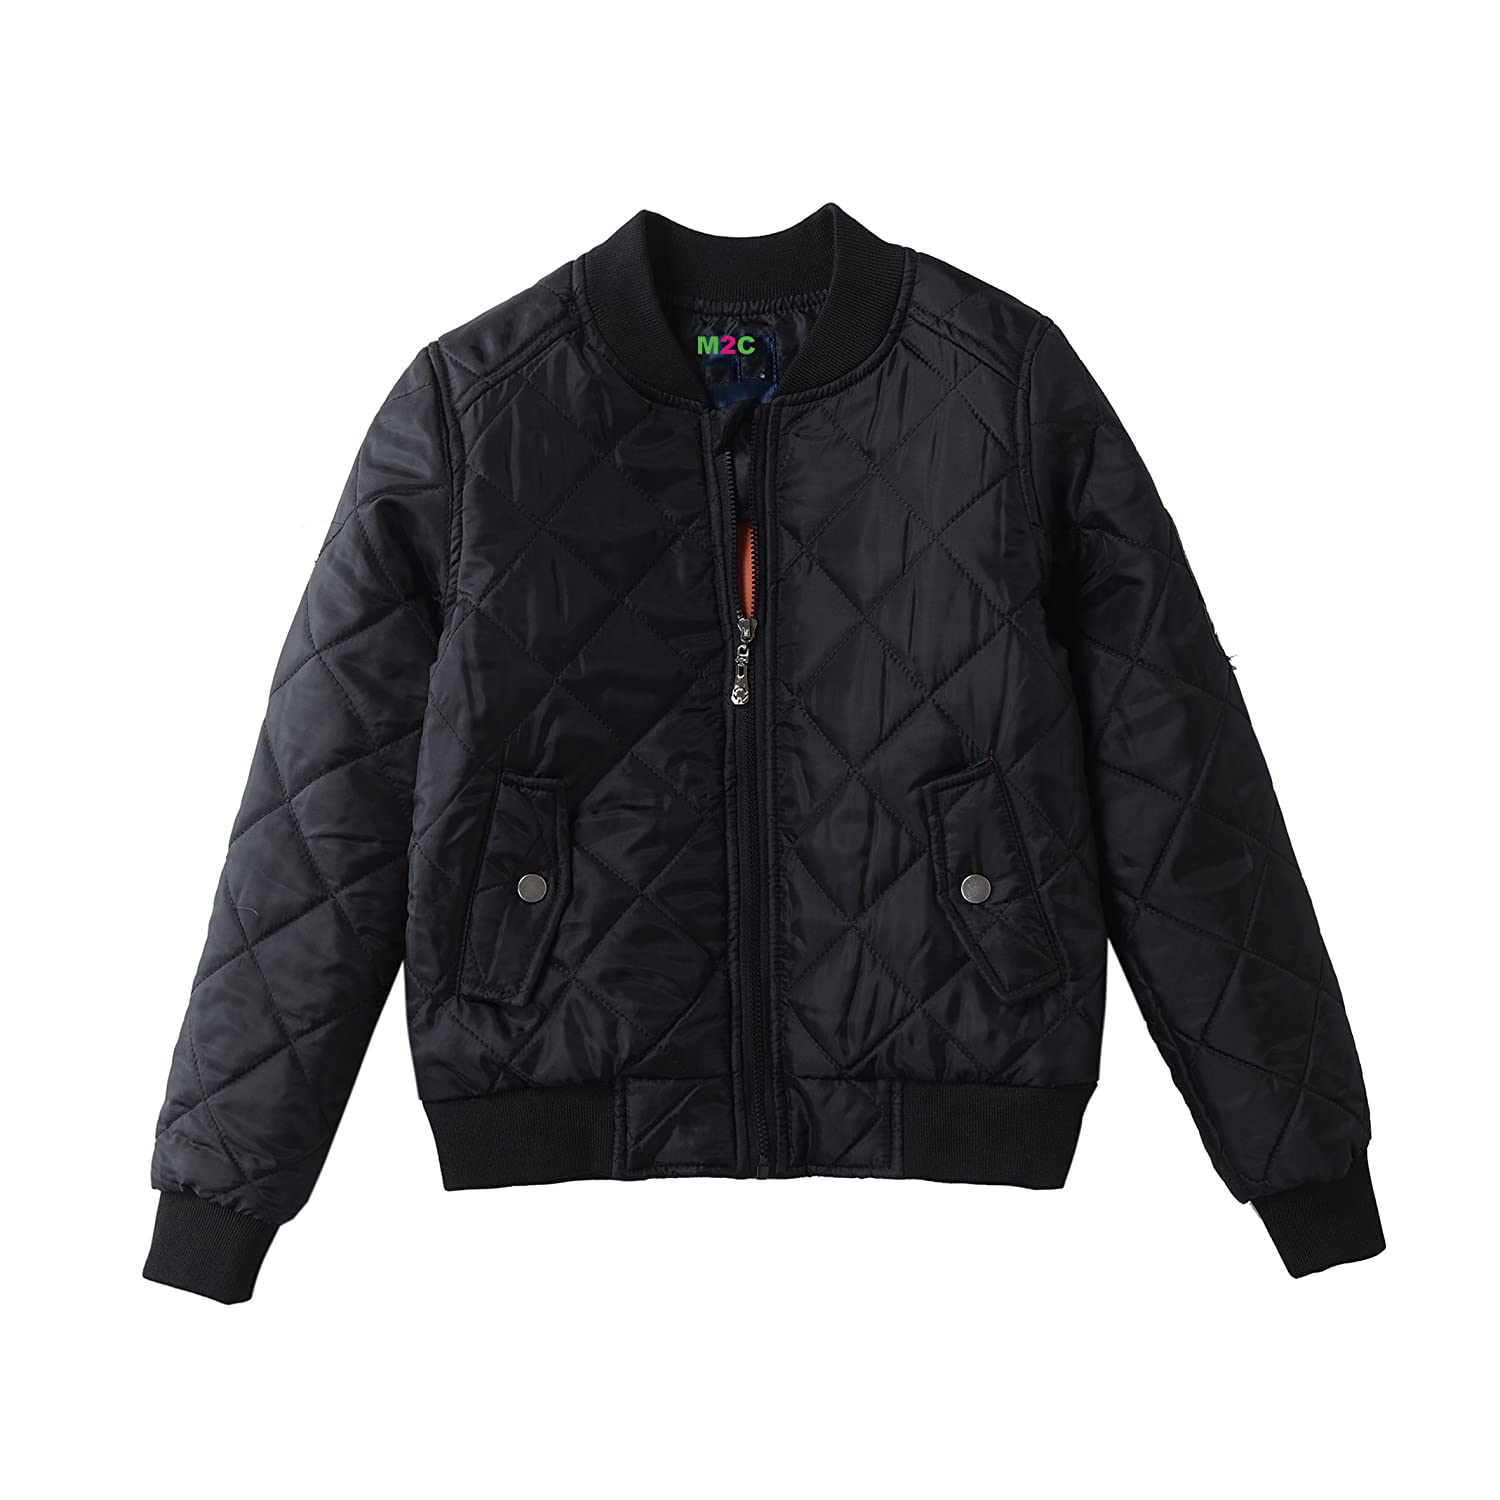 M2C OUTERWEAR ボーイズ